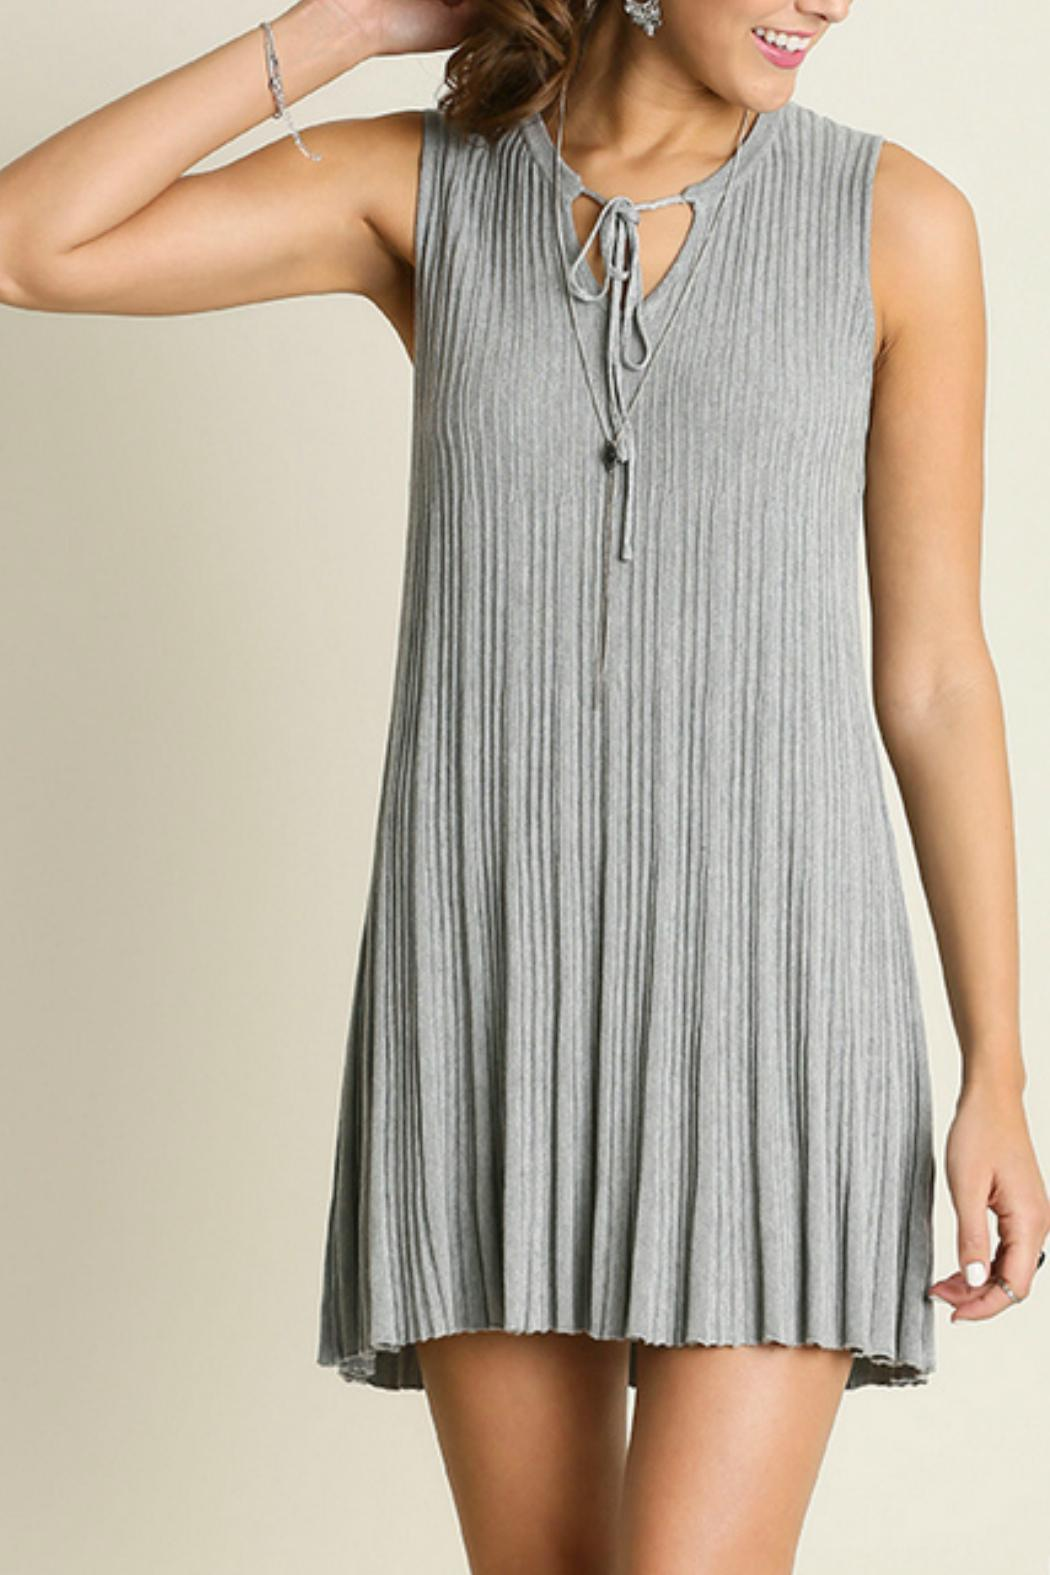 Umgee USA Sleeveless Keyhole Dress - Front Cropped Image